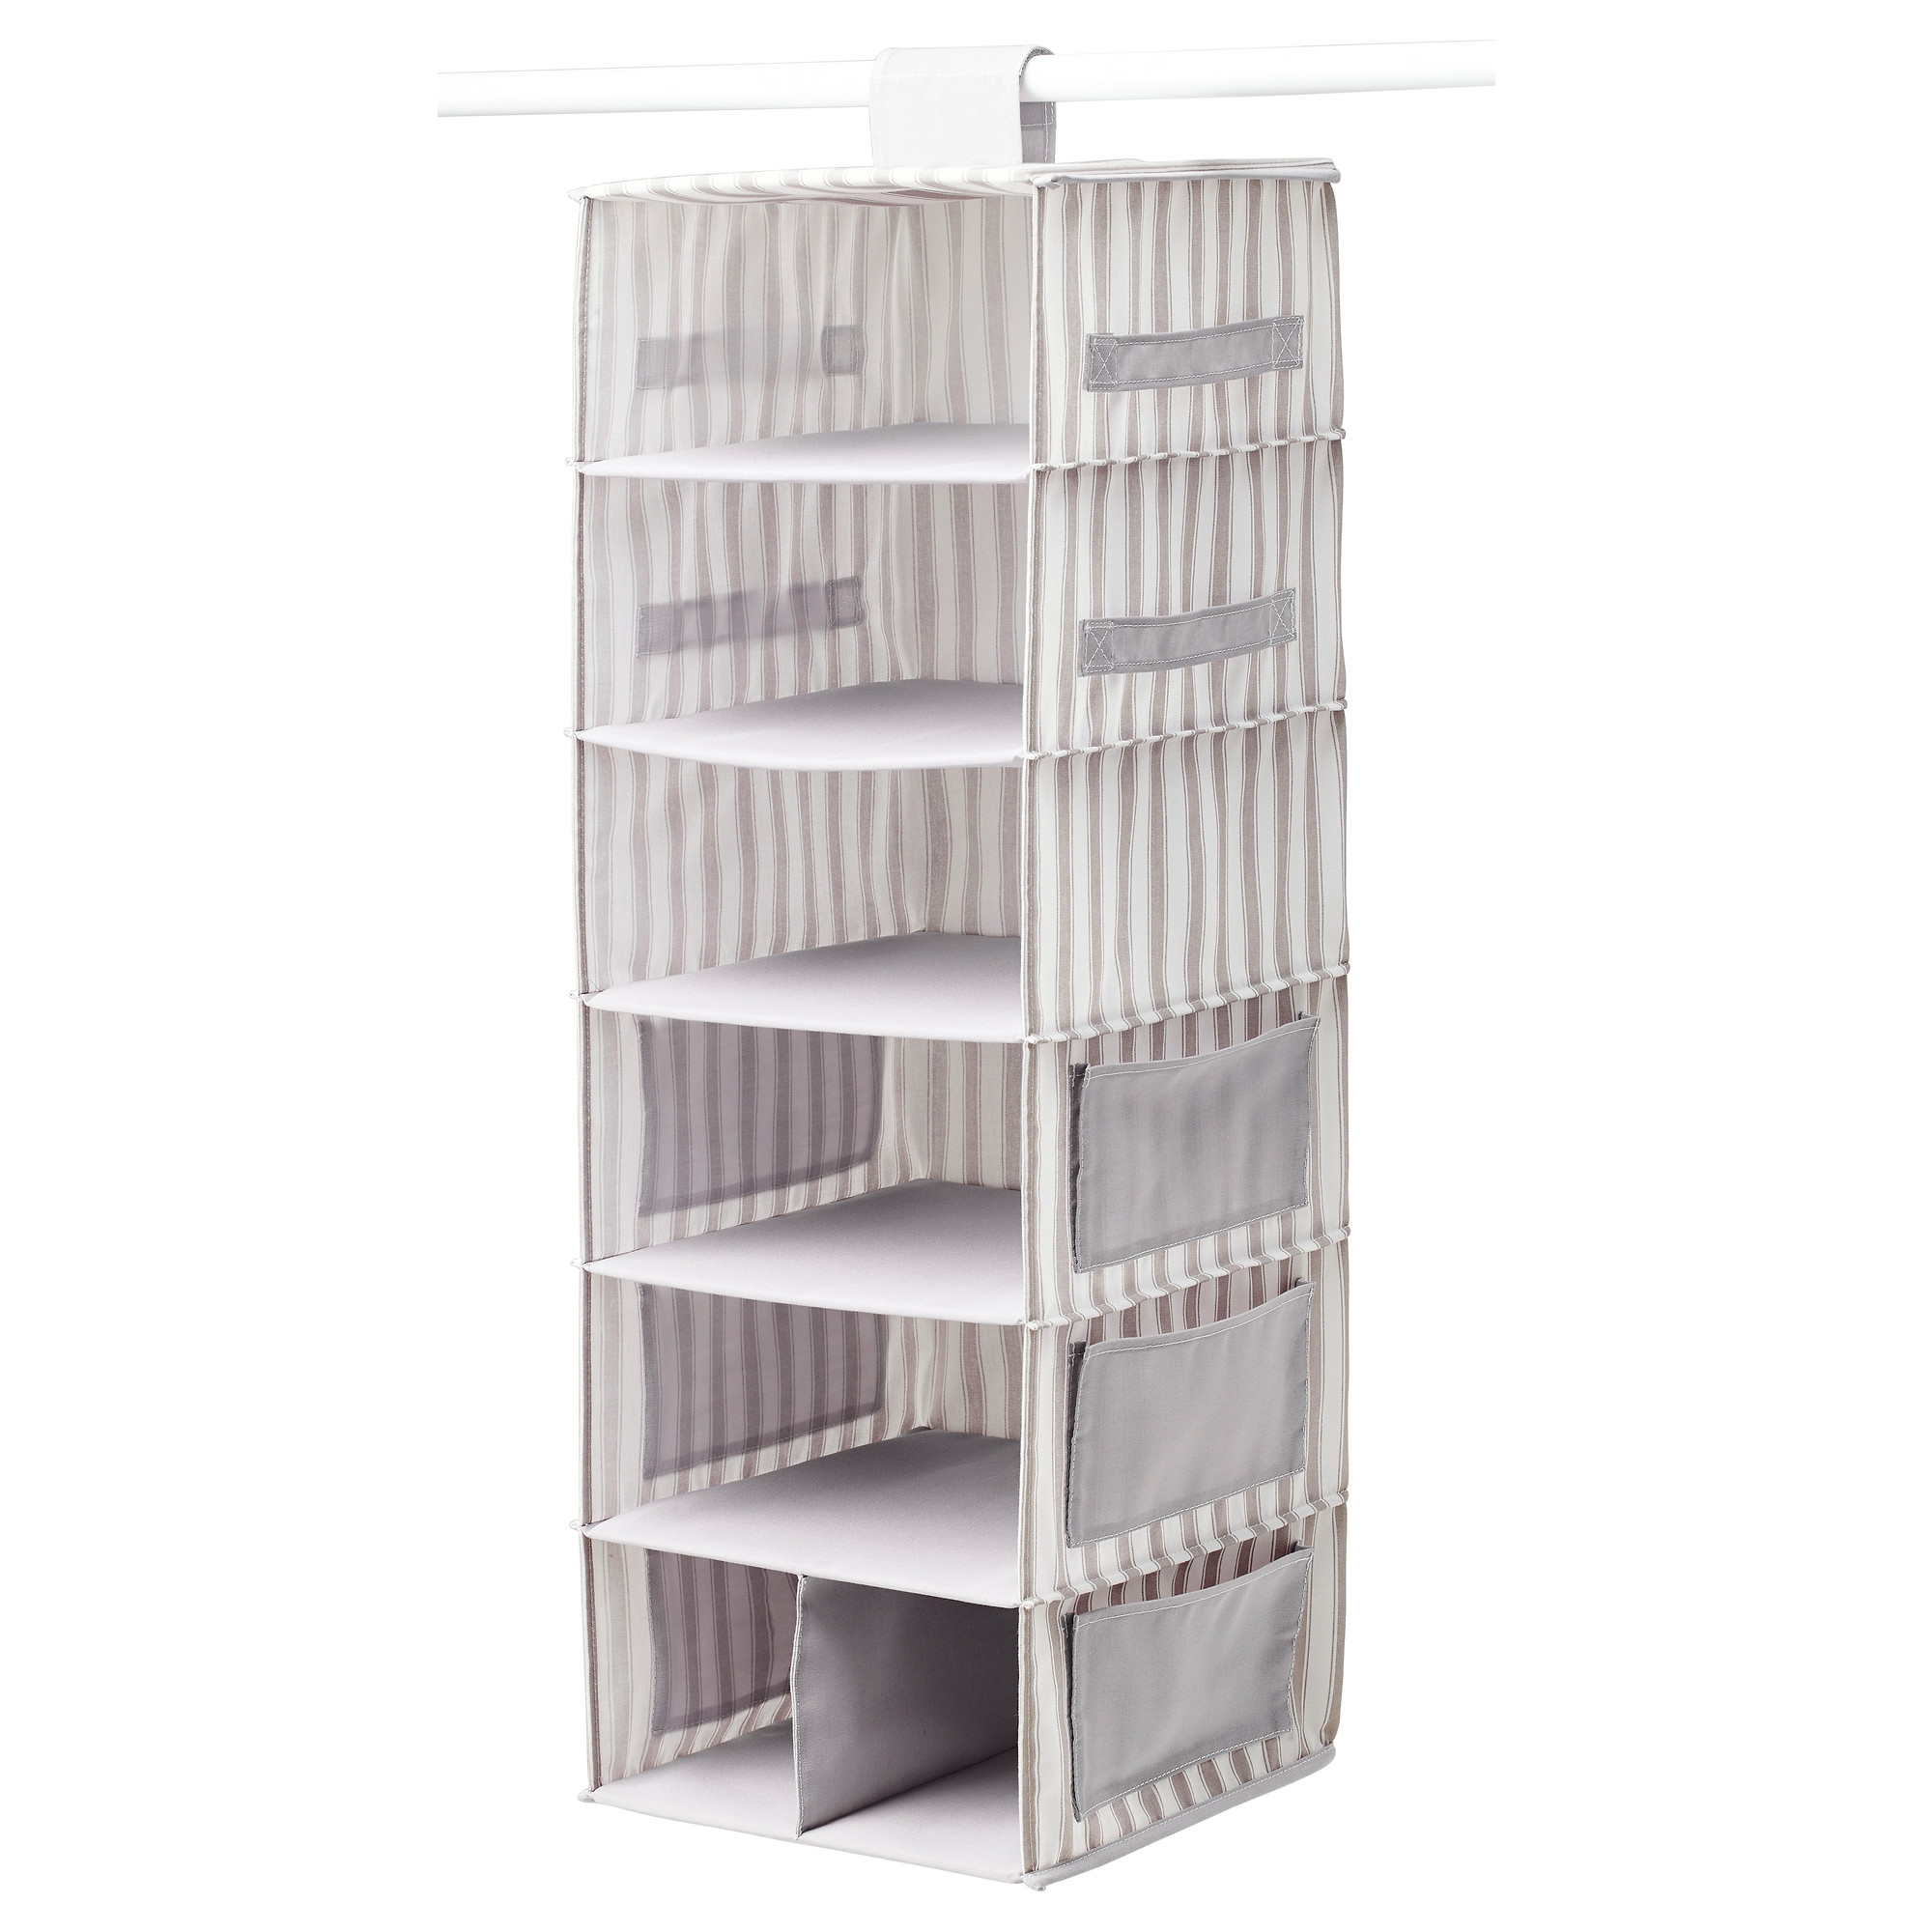 Clothes Organizers Storage Ikea For Hanging Wardrobe Shelves (Image 12 of 25)